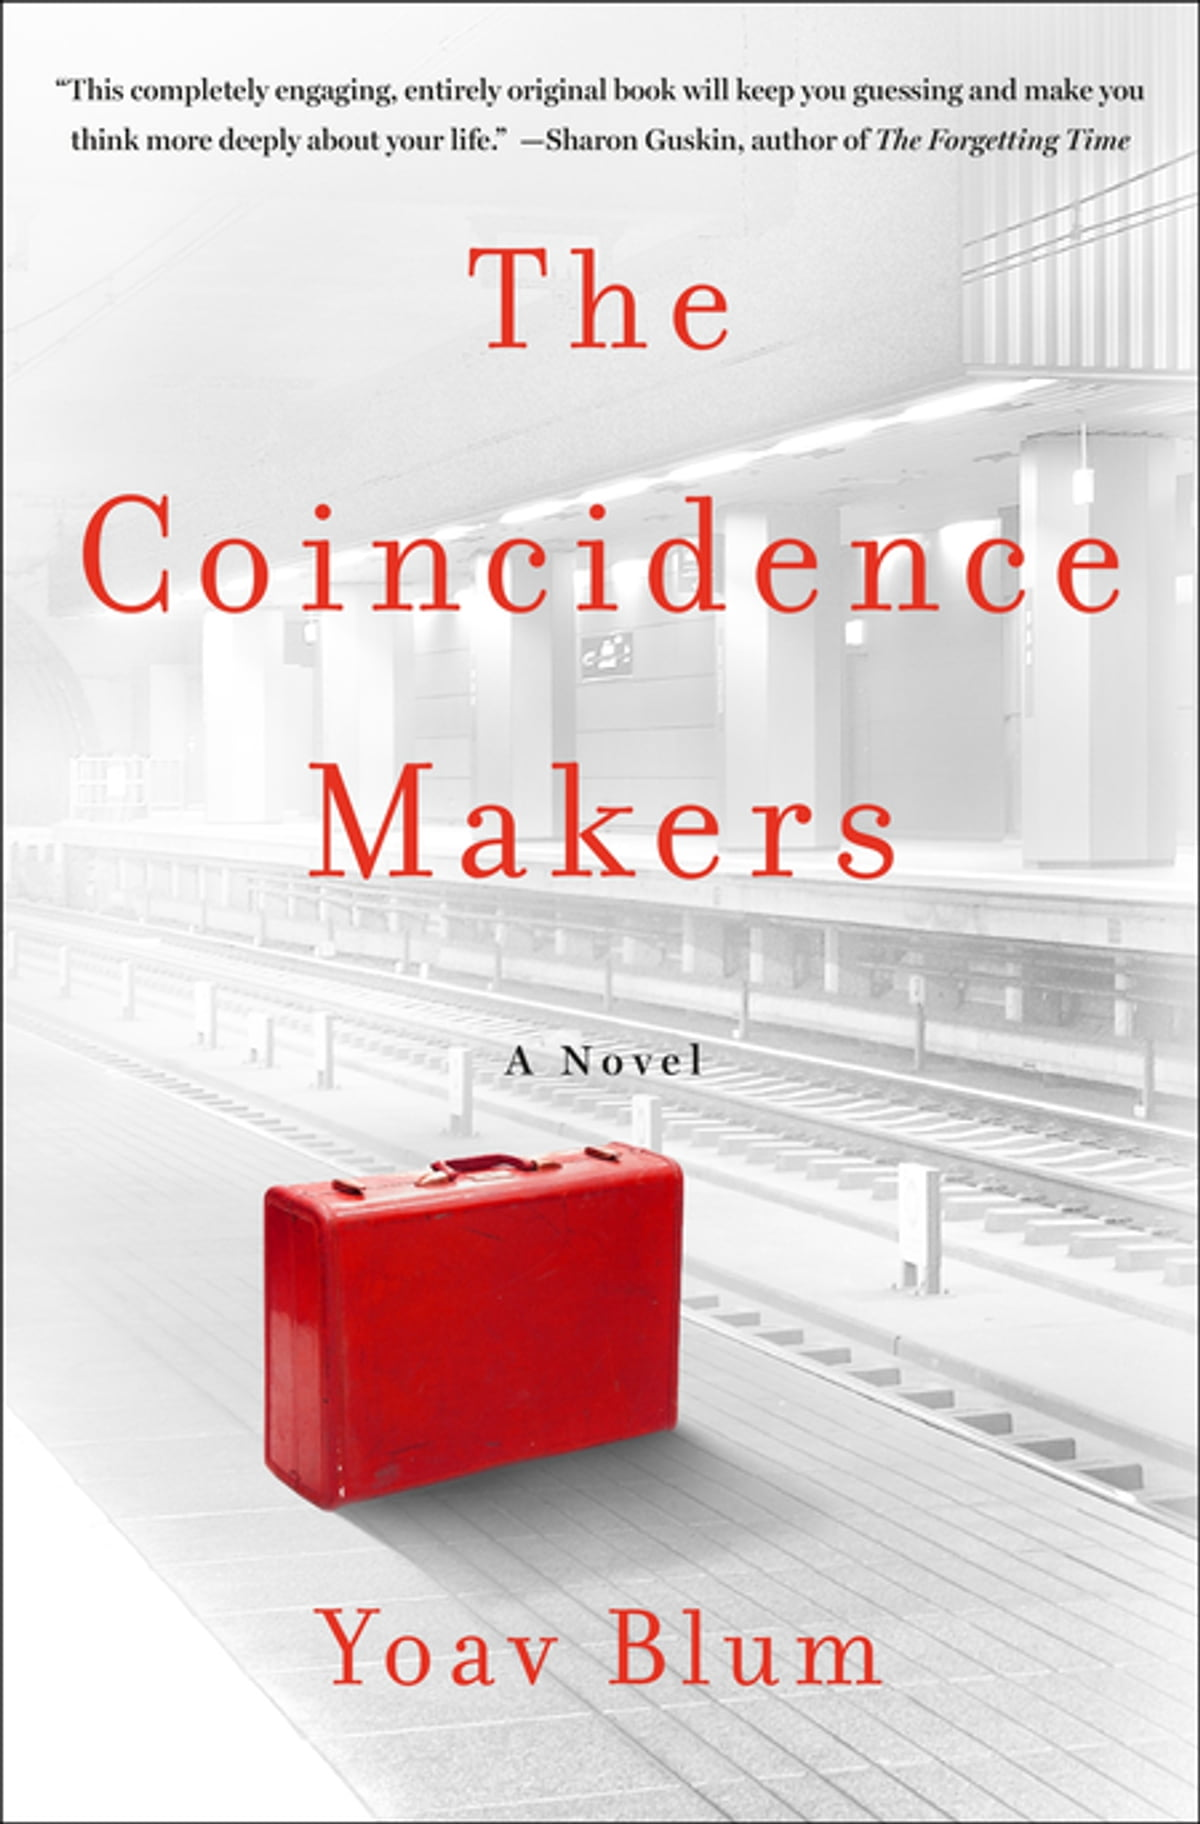 Ebook The Coincidence Makers By Yoav Blum